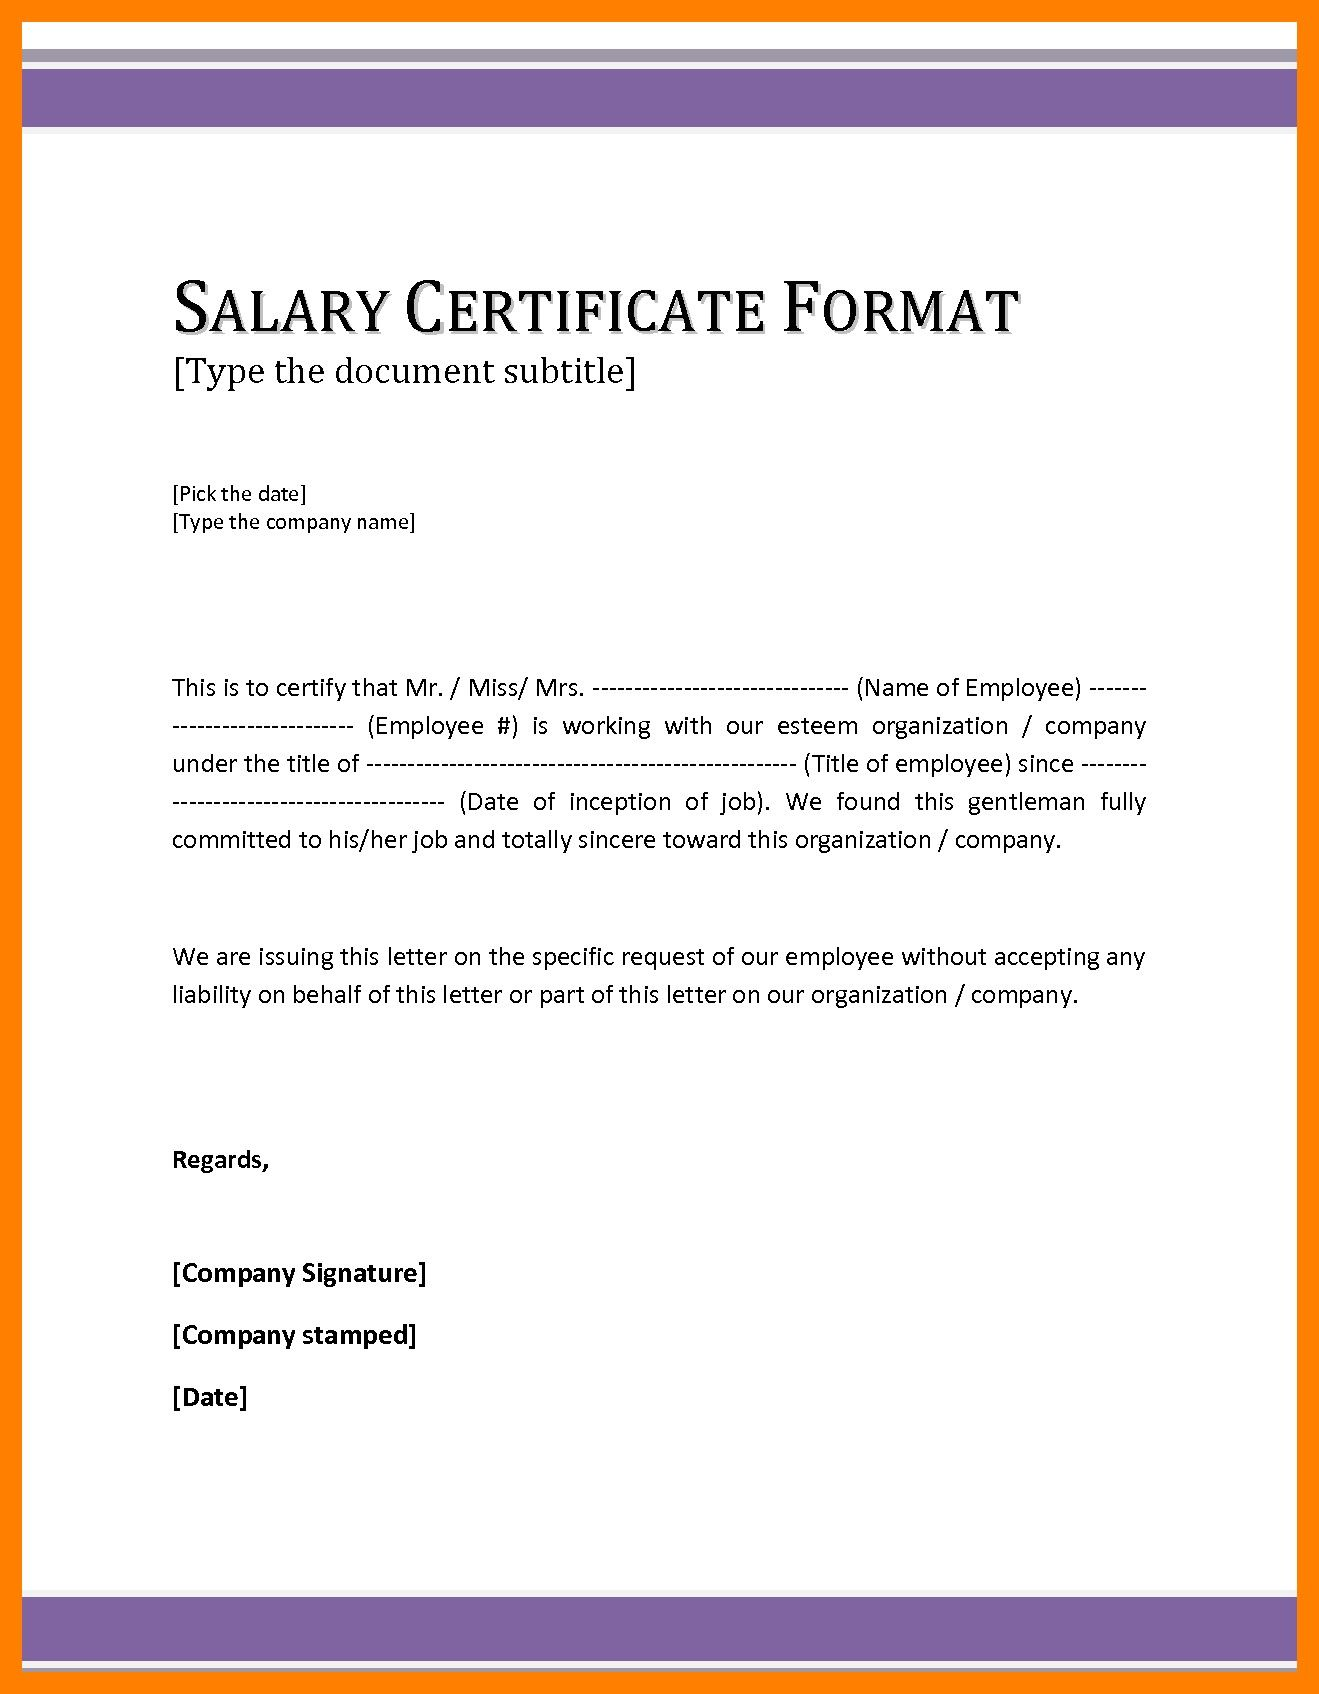 salary certificate letter google search objective in resume examples for students career fresh graduate teacher cv format bankers